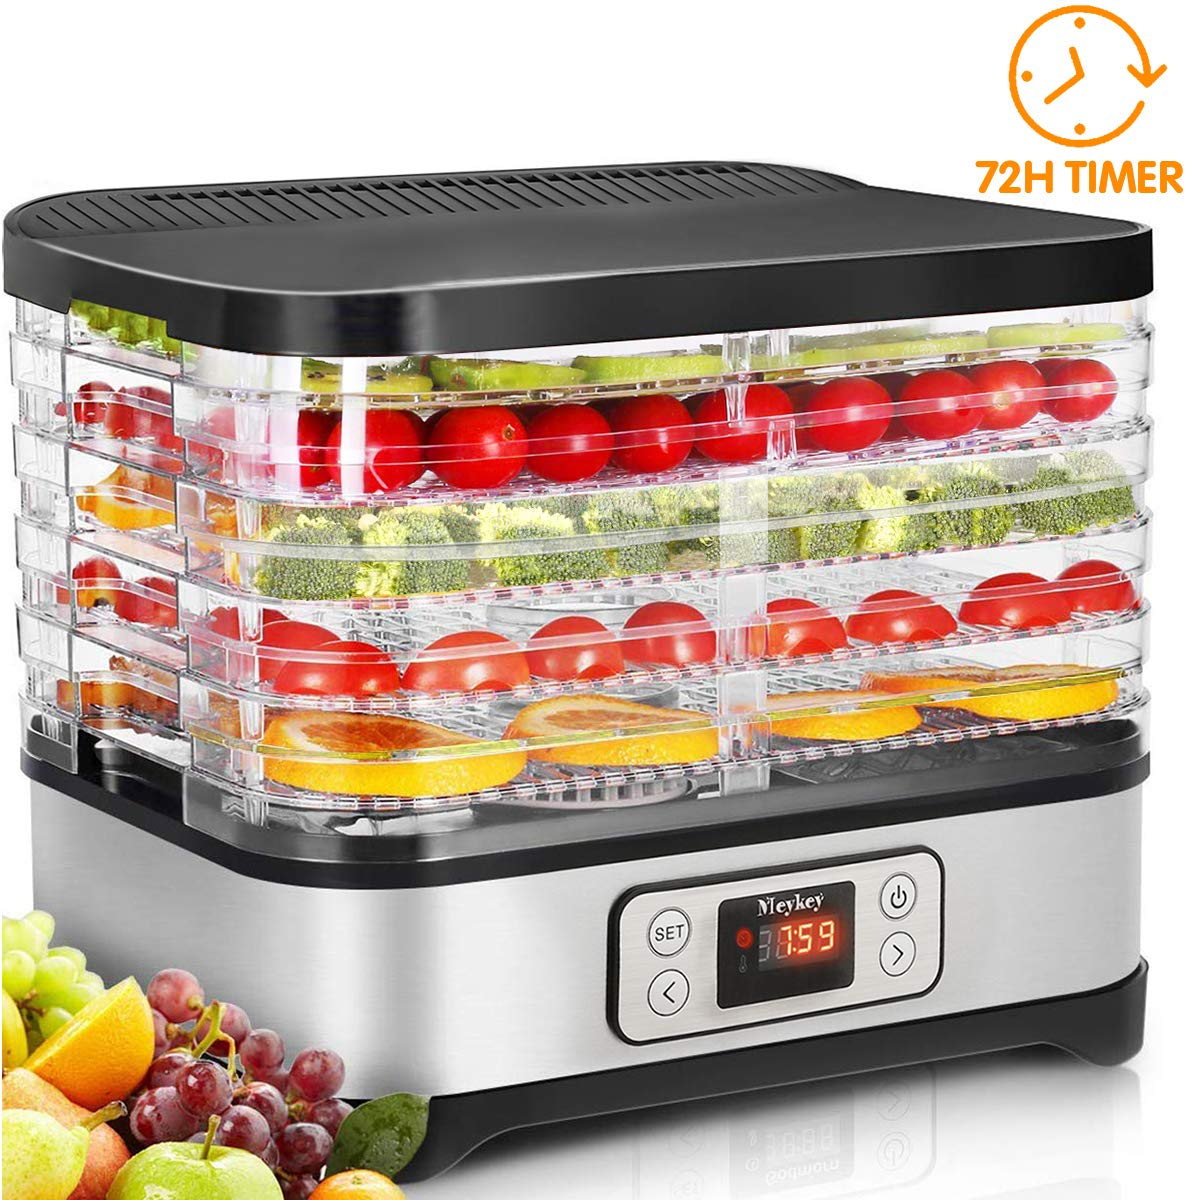 Food Dehydrator Machine, Digital Timer and Temperature Control, 5 Trays, for Jerky/Meat/Beef/Fruit/Vegetable, BPA Free by Homdox